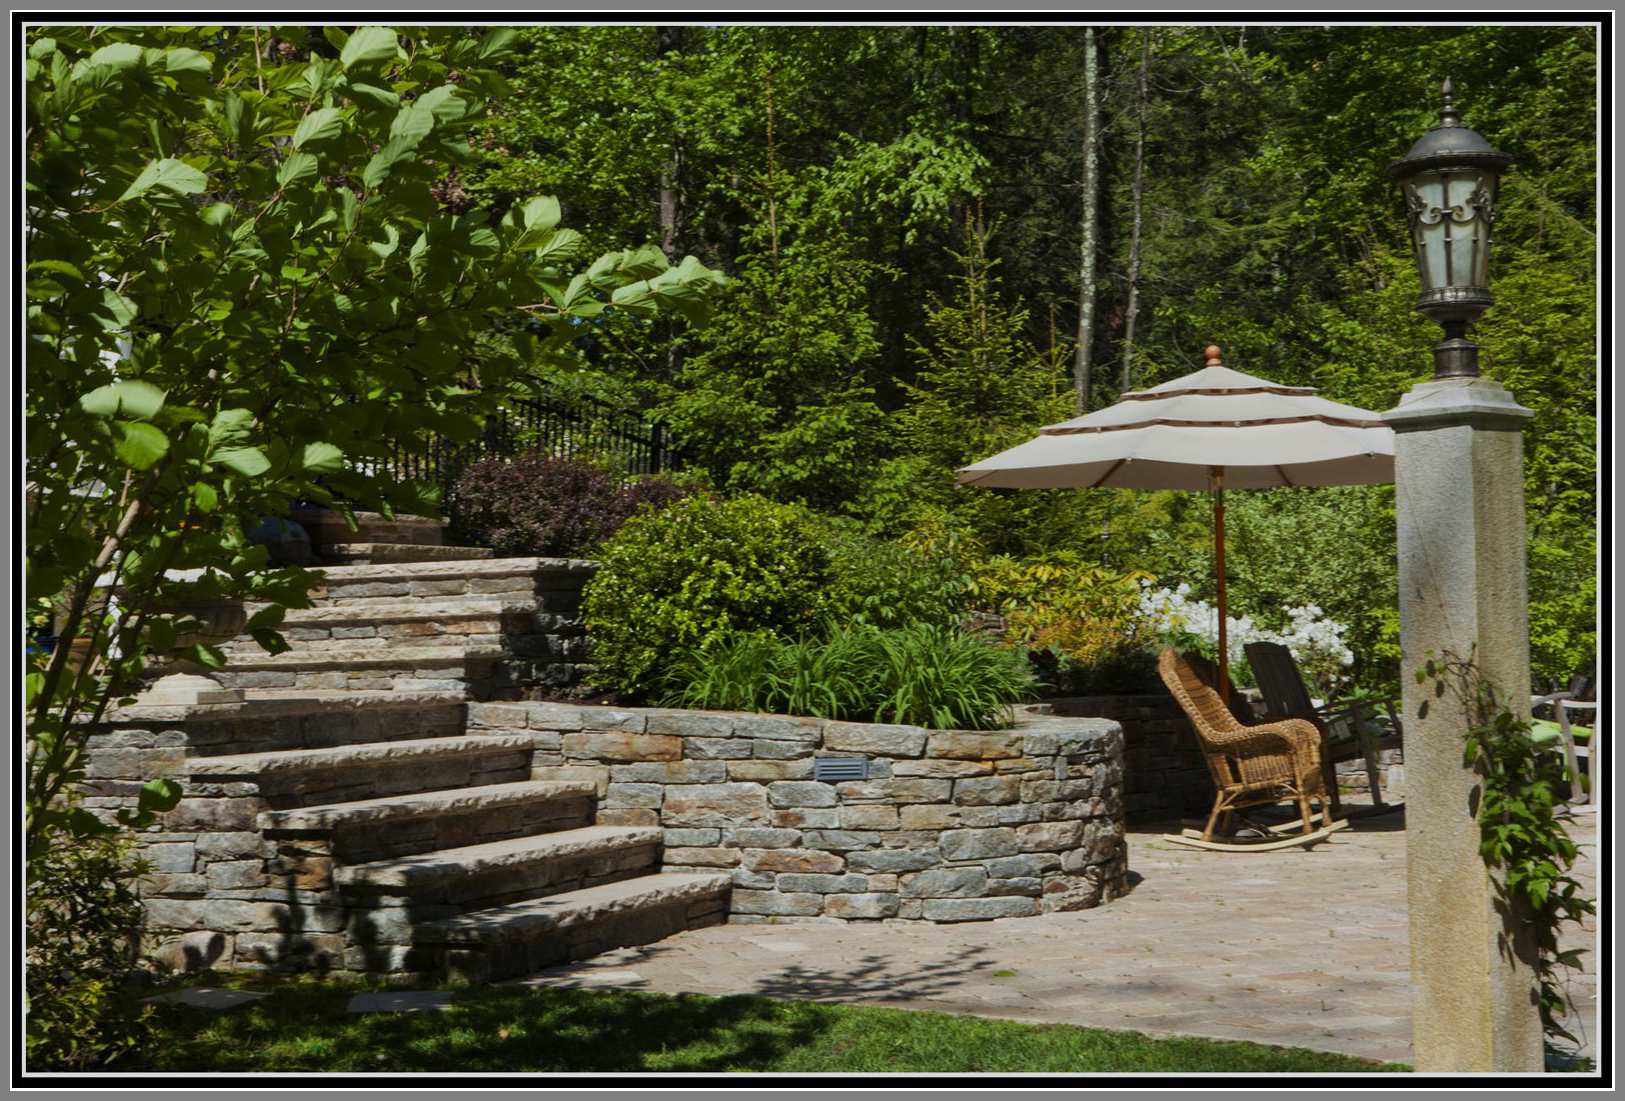 Terrace garden with stone walls and steps by Artistic Outdoors